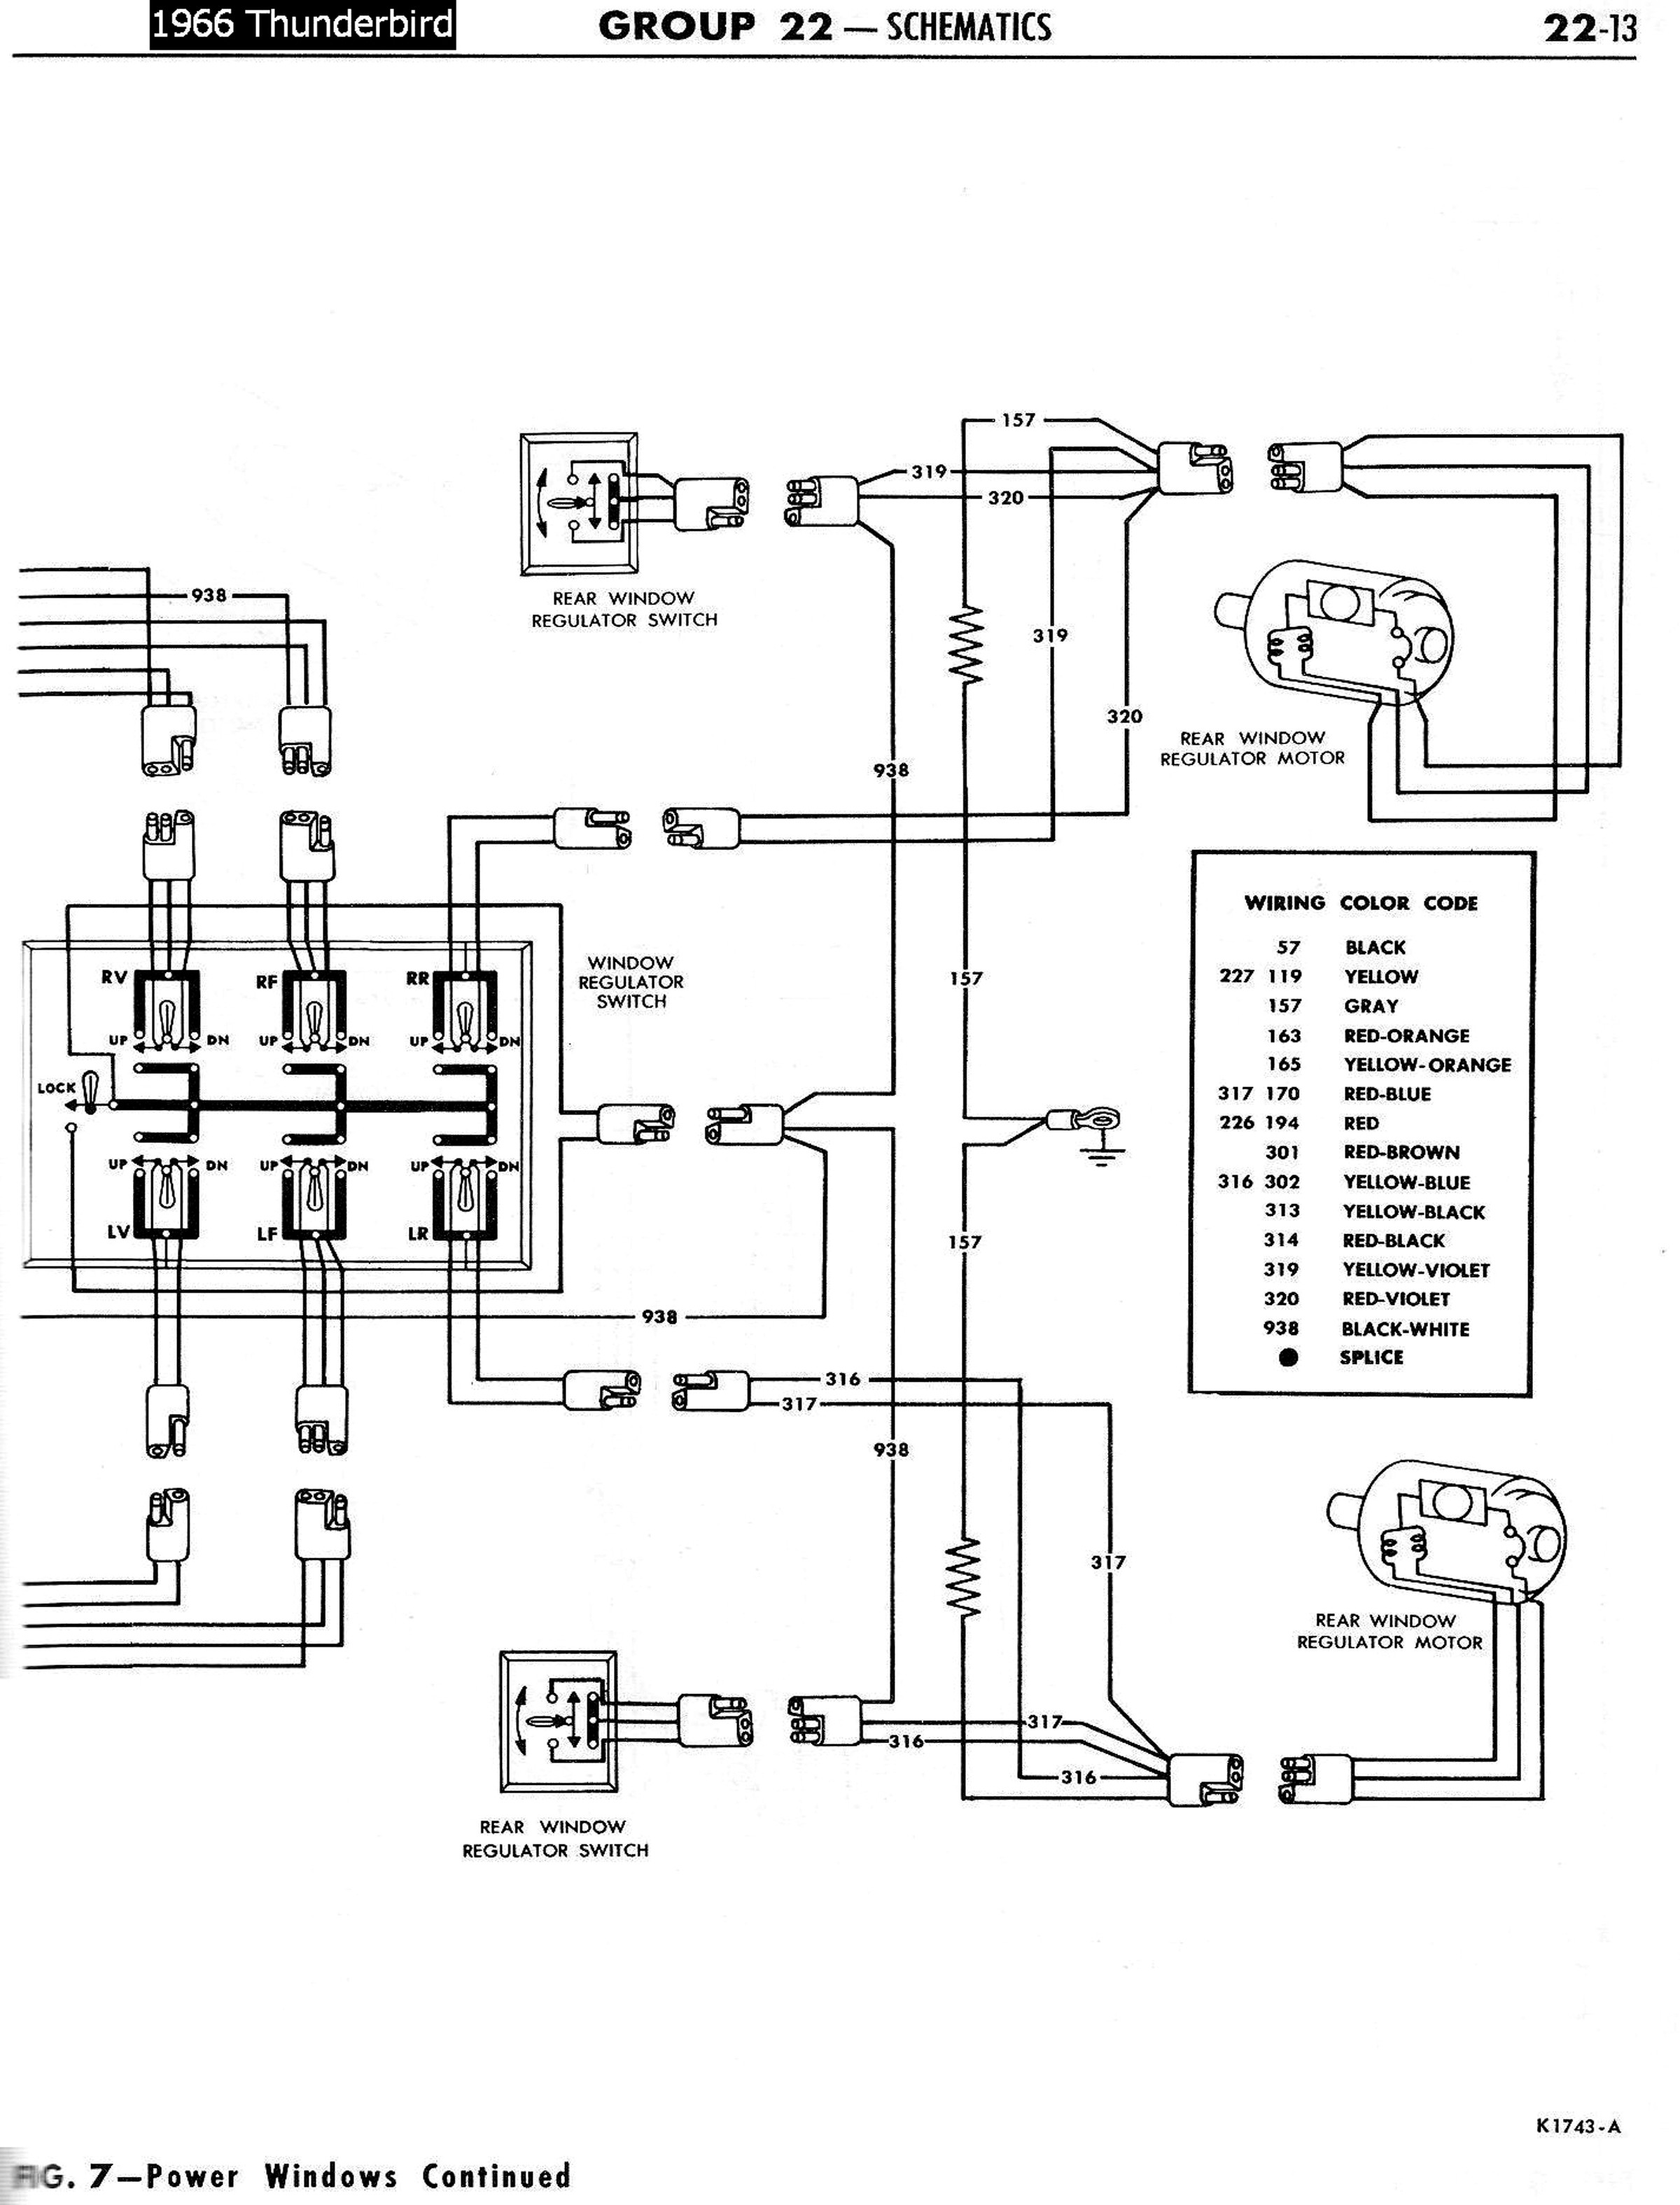 Simple Turn Signal Wiring Diagram